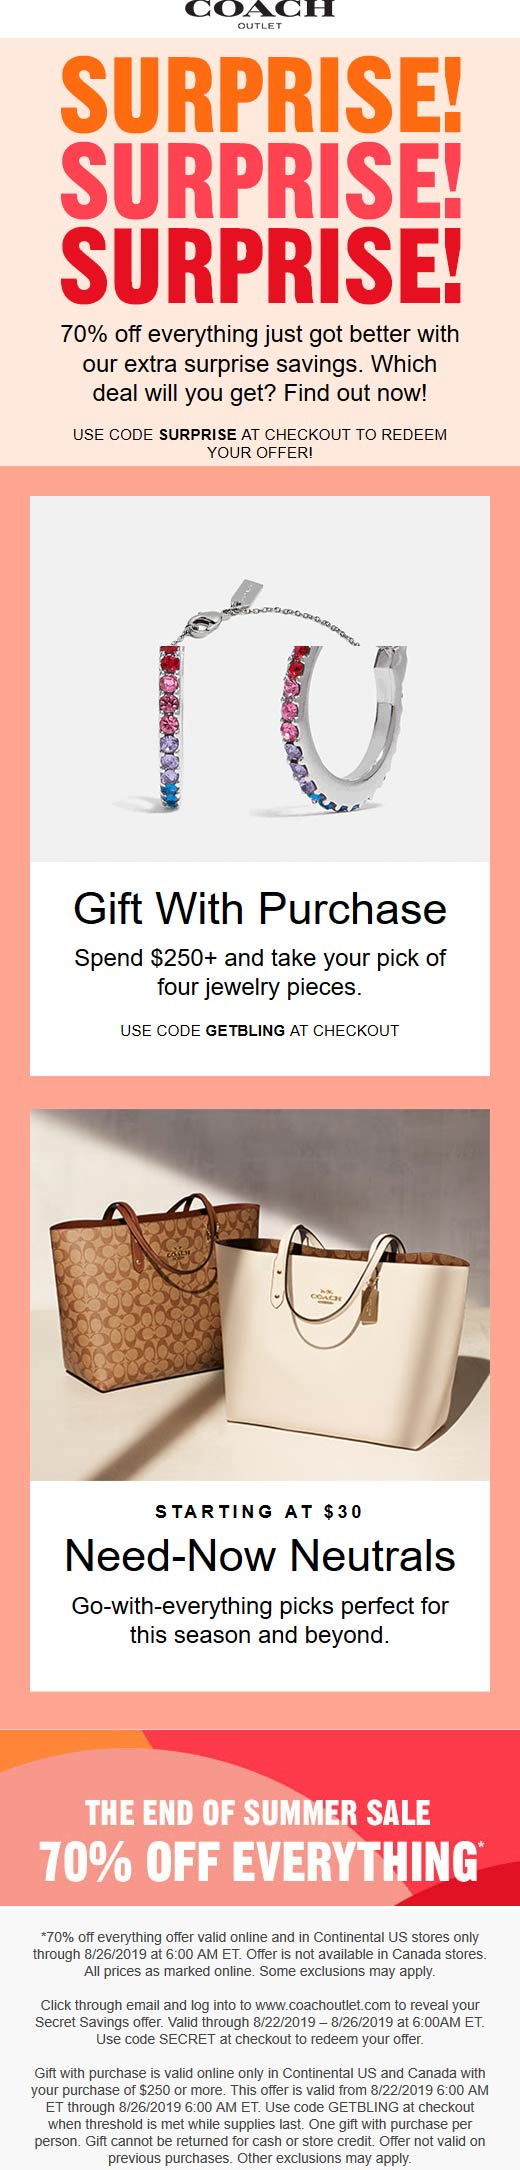 CoachOutlet.com Promo Coupon 70% off everything at Coach Outlet, or online via promo code SURPRISE